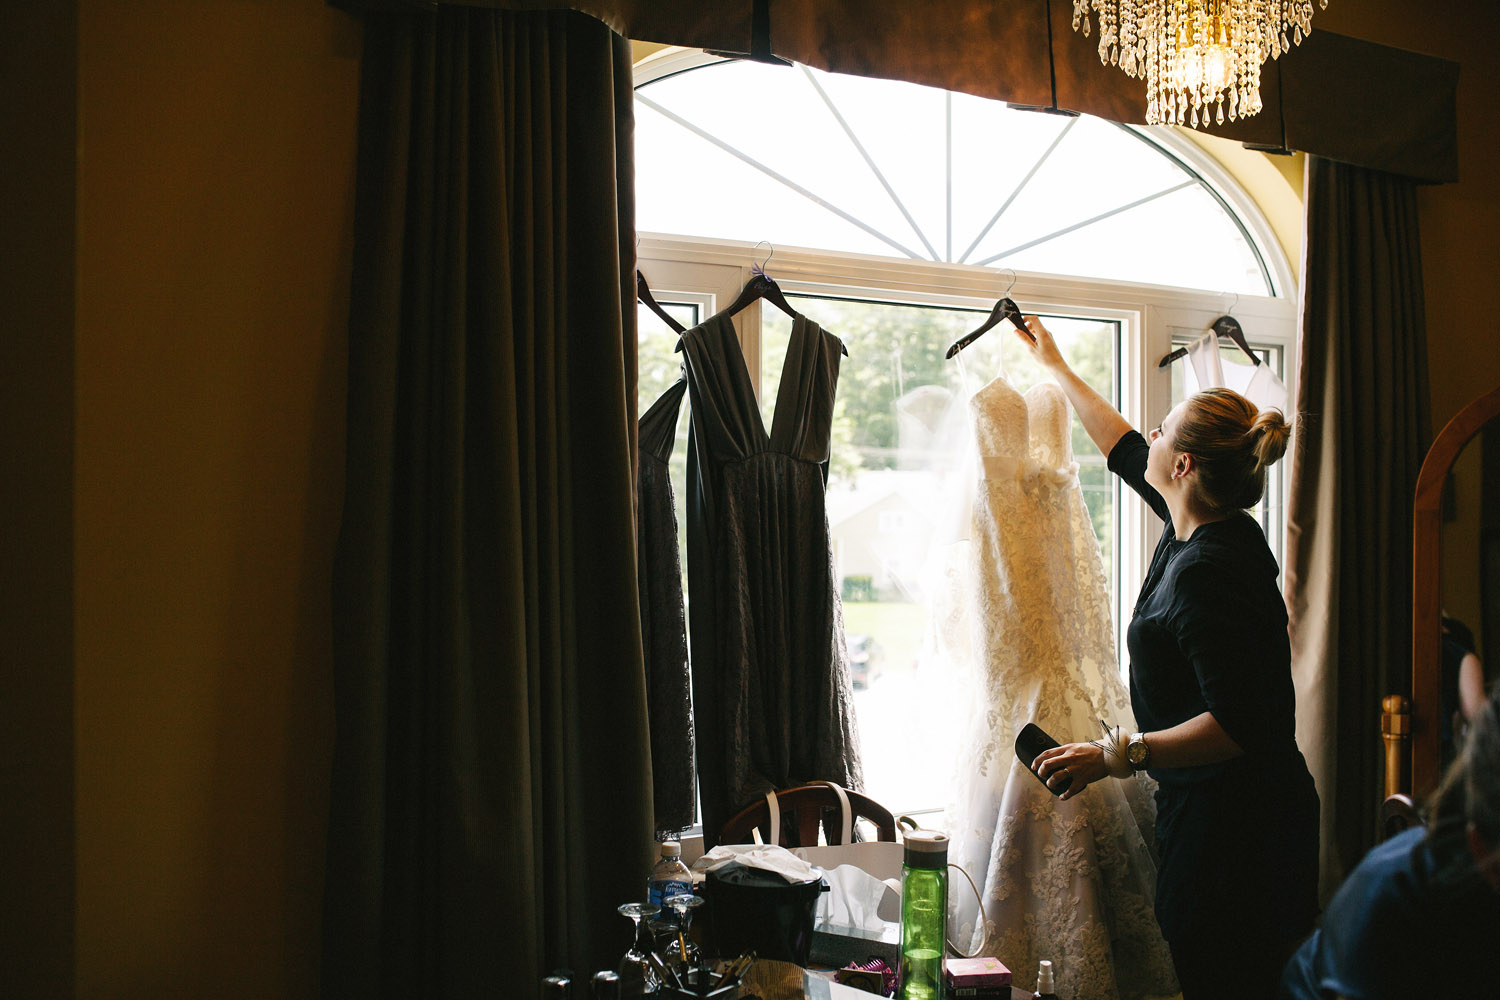 Placing wedding dress in the window at Walters Falls Inn